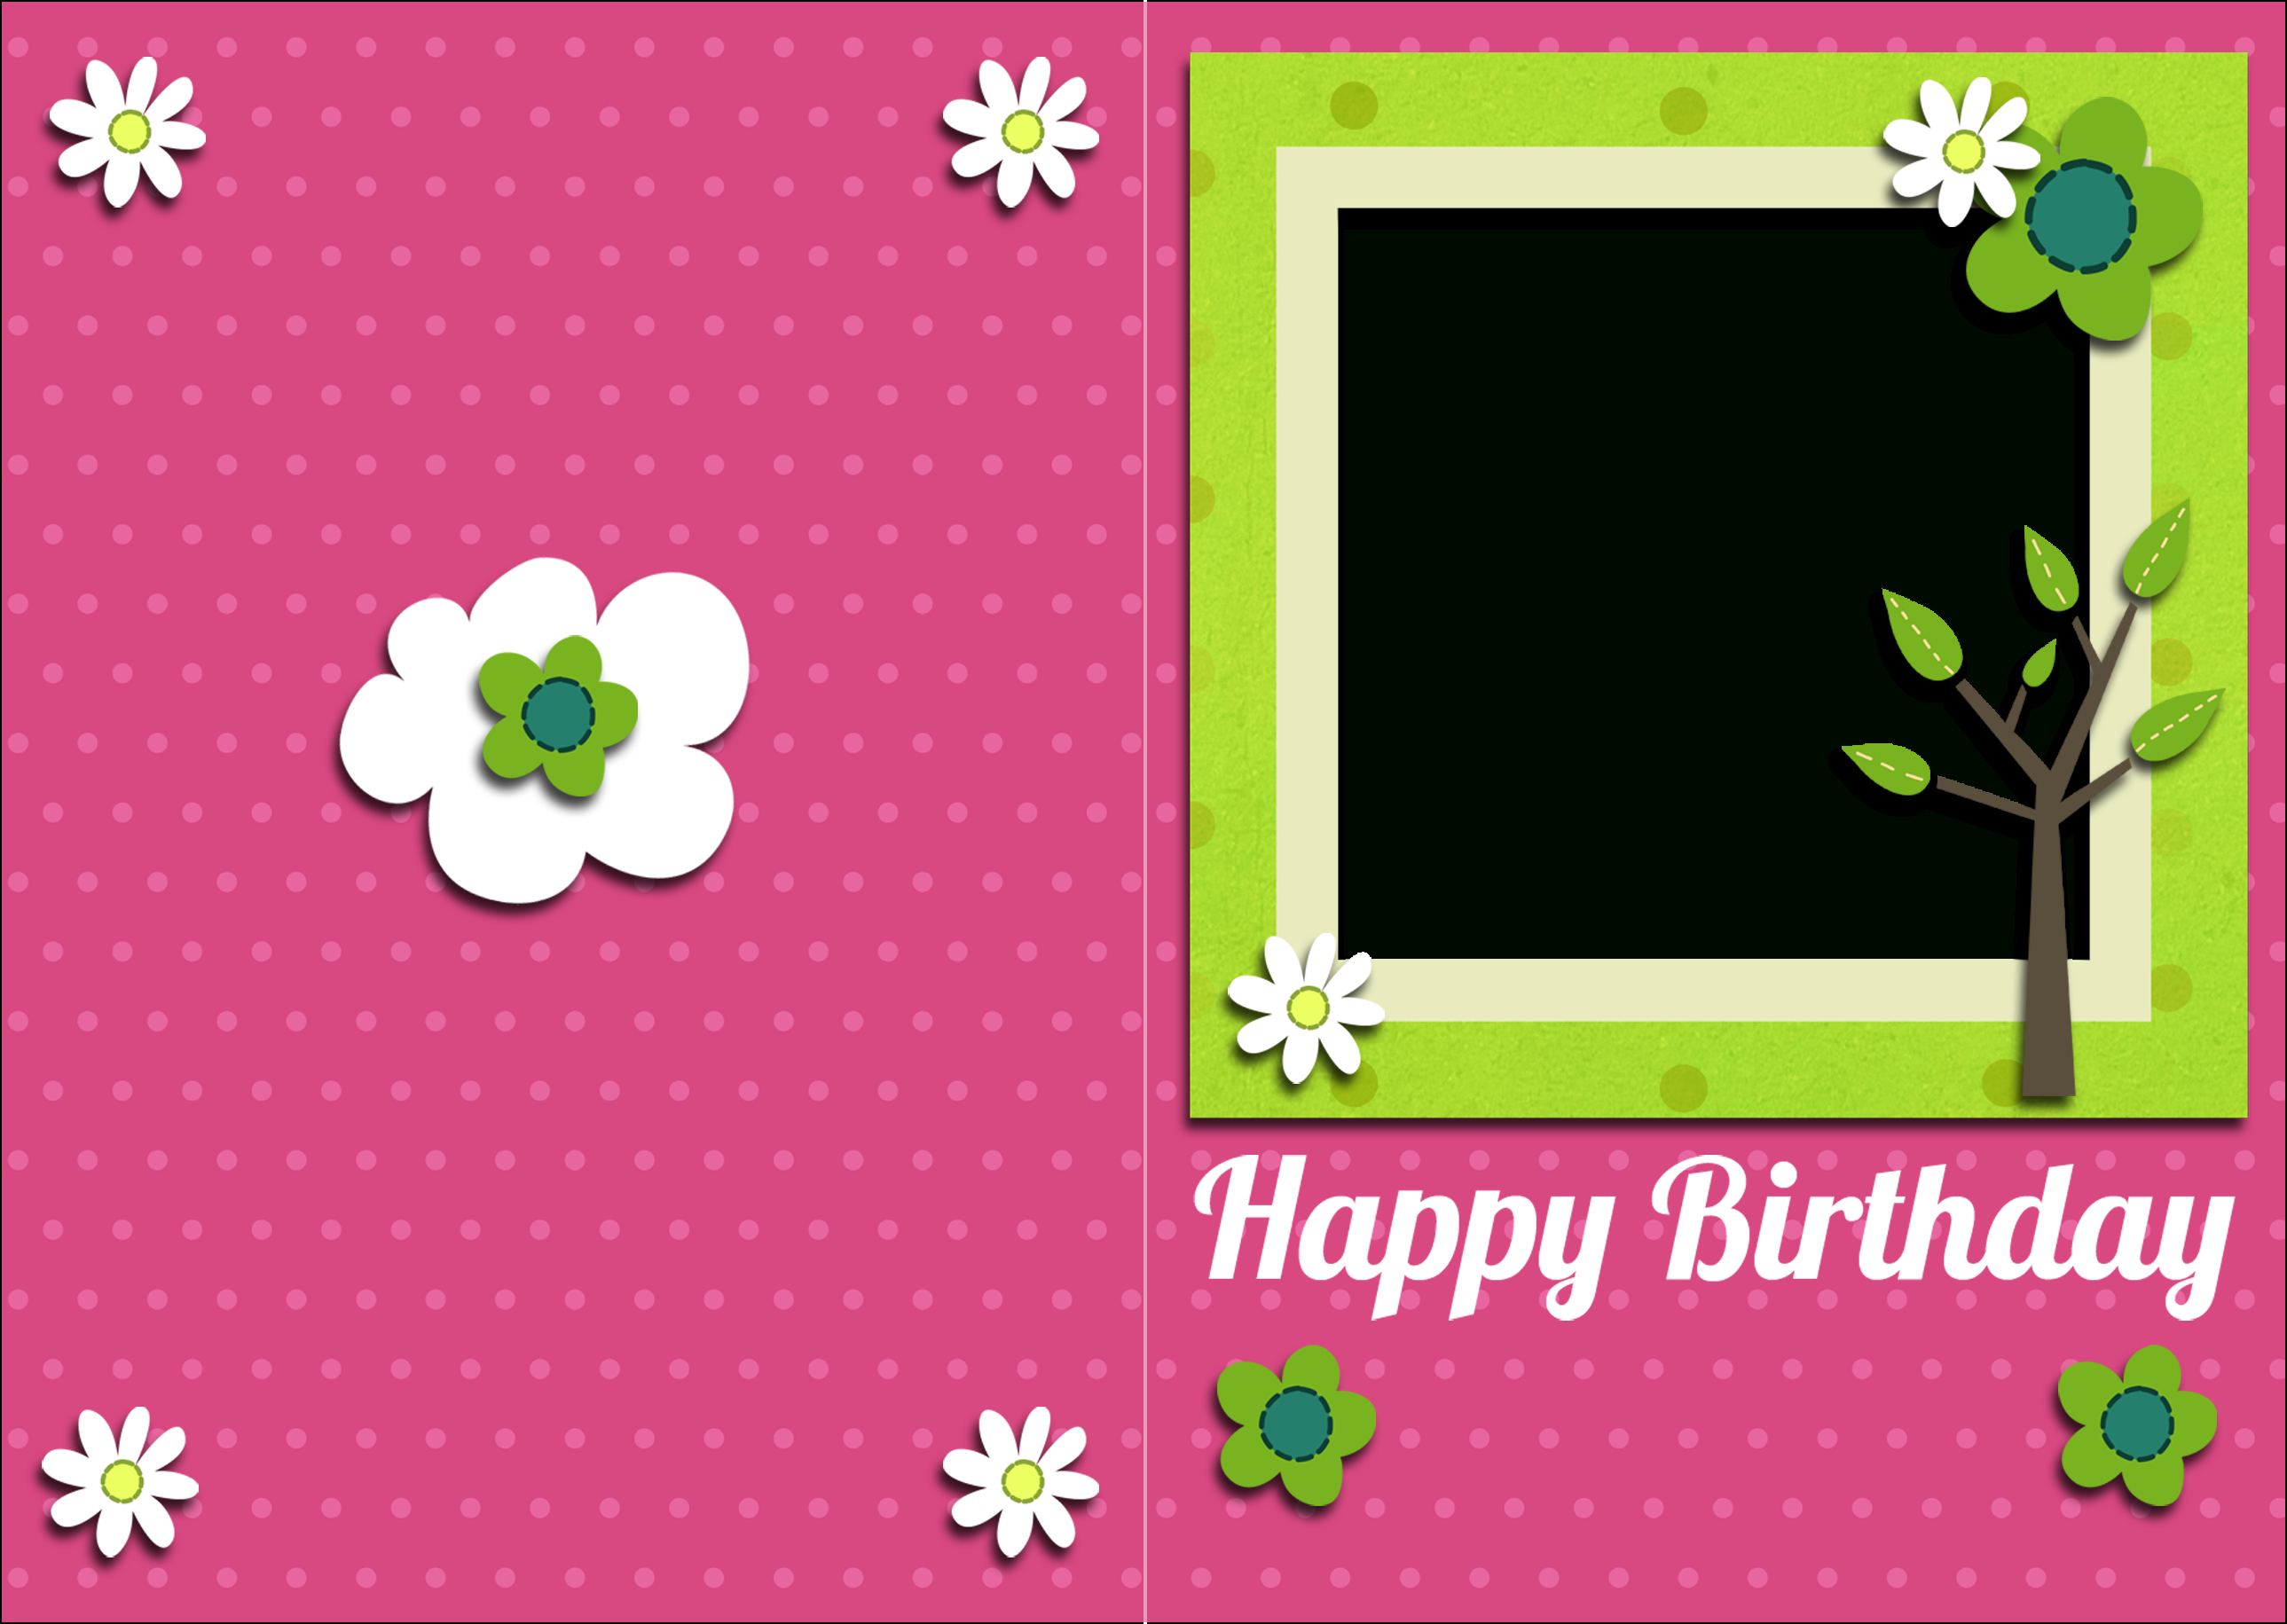 Printable Birthday Cards Hd Wallpapers Download Free Printable - Make Your Own Printable Birthday Cards Online Free